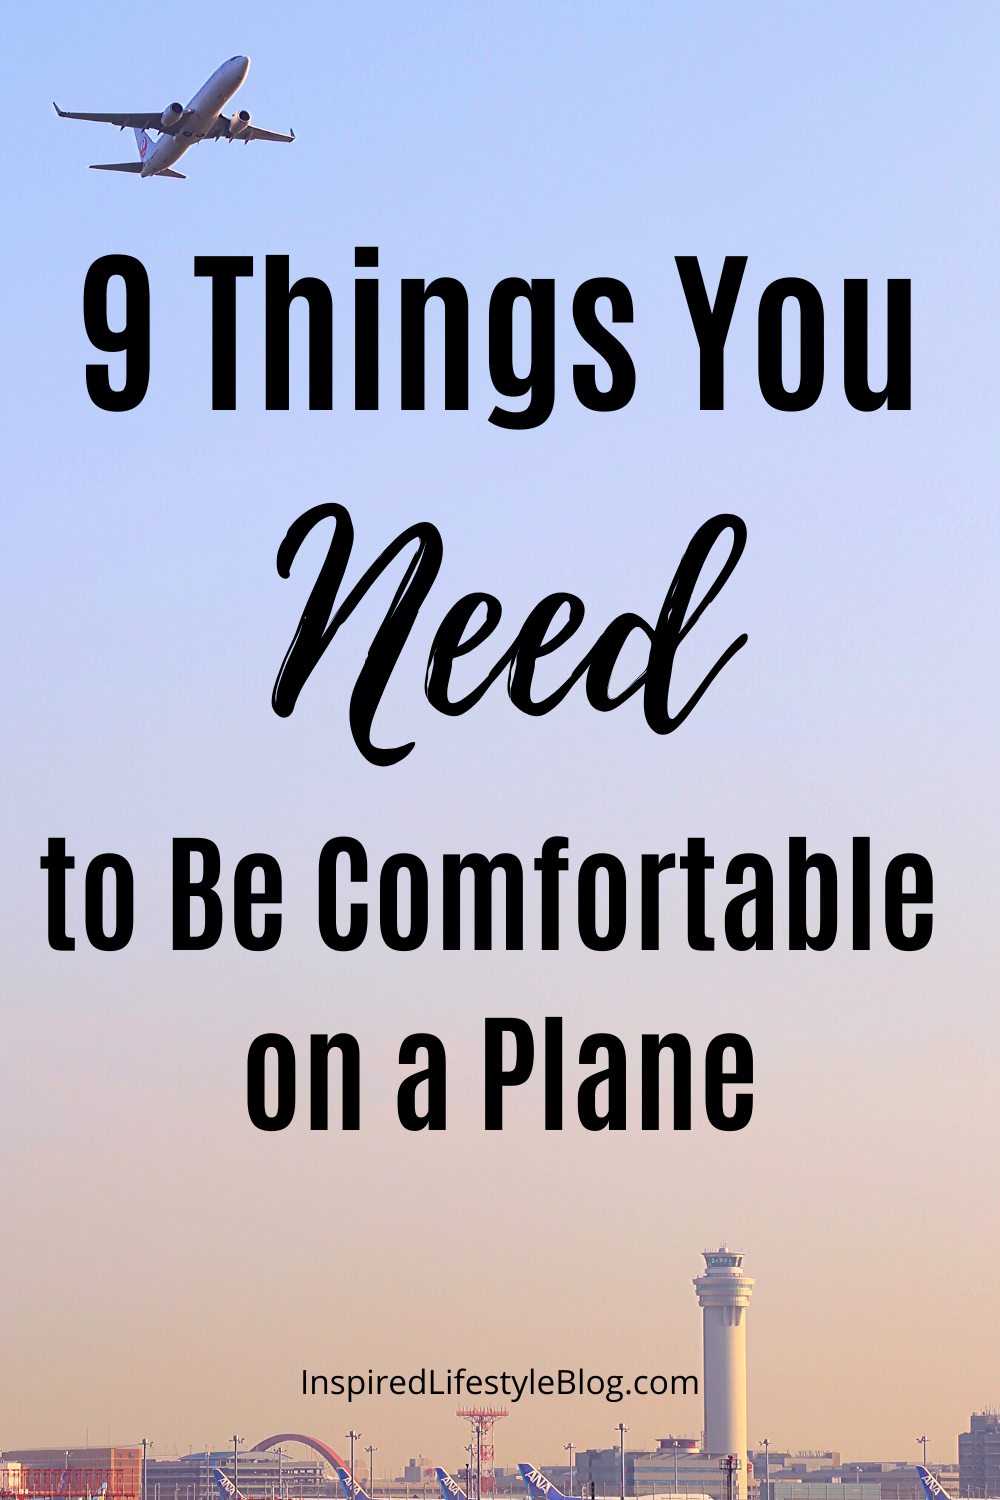 Do you hate being uncomfortable on flights? Read this post to find out the 9 things you NEED to be comfortable! #TravelHacks #TravelTips #AirportHacks #AirplaneHacks